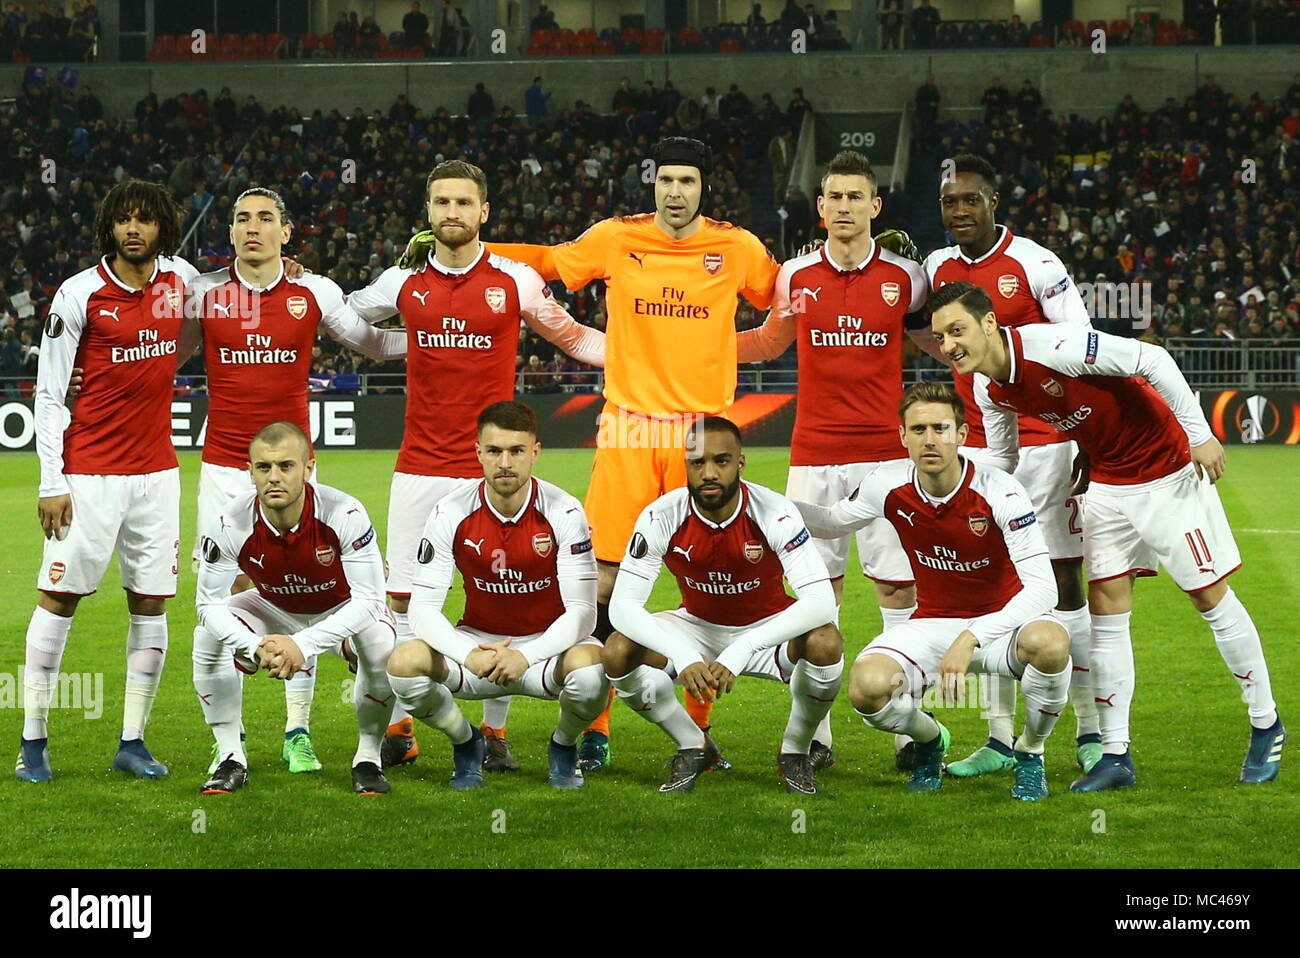 Moscow, Russia. 12th Apr, 2018. MOSCOW, RUSSIA - APRIL 12, 2018: Arsenal F.C.'s Jack Wilshere, Aaron Ramsey, Alexandre Lacazette, Nacho Monreal, Mesut Ozil (L-R front), Mohamed Elneny, Hector Bellerin, Shkodran Mustafi, goalkeeper Petr Cech, Laurent Koscielny and Danny Welbeck (L-R background) pose for a group photograph ahead of the 2017-2018 UEFA Europa League quarterfinal second leg football match against CSKA Moscow at VEB Arena (Arena CSKA). The game ended in a 2-2 draw. Mikhail Tereshchenko/TASS Credit: ITAR-TASS News Agency/Alamy Live News - Stock Image